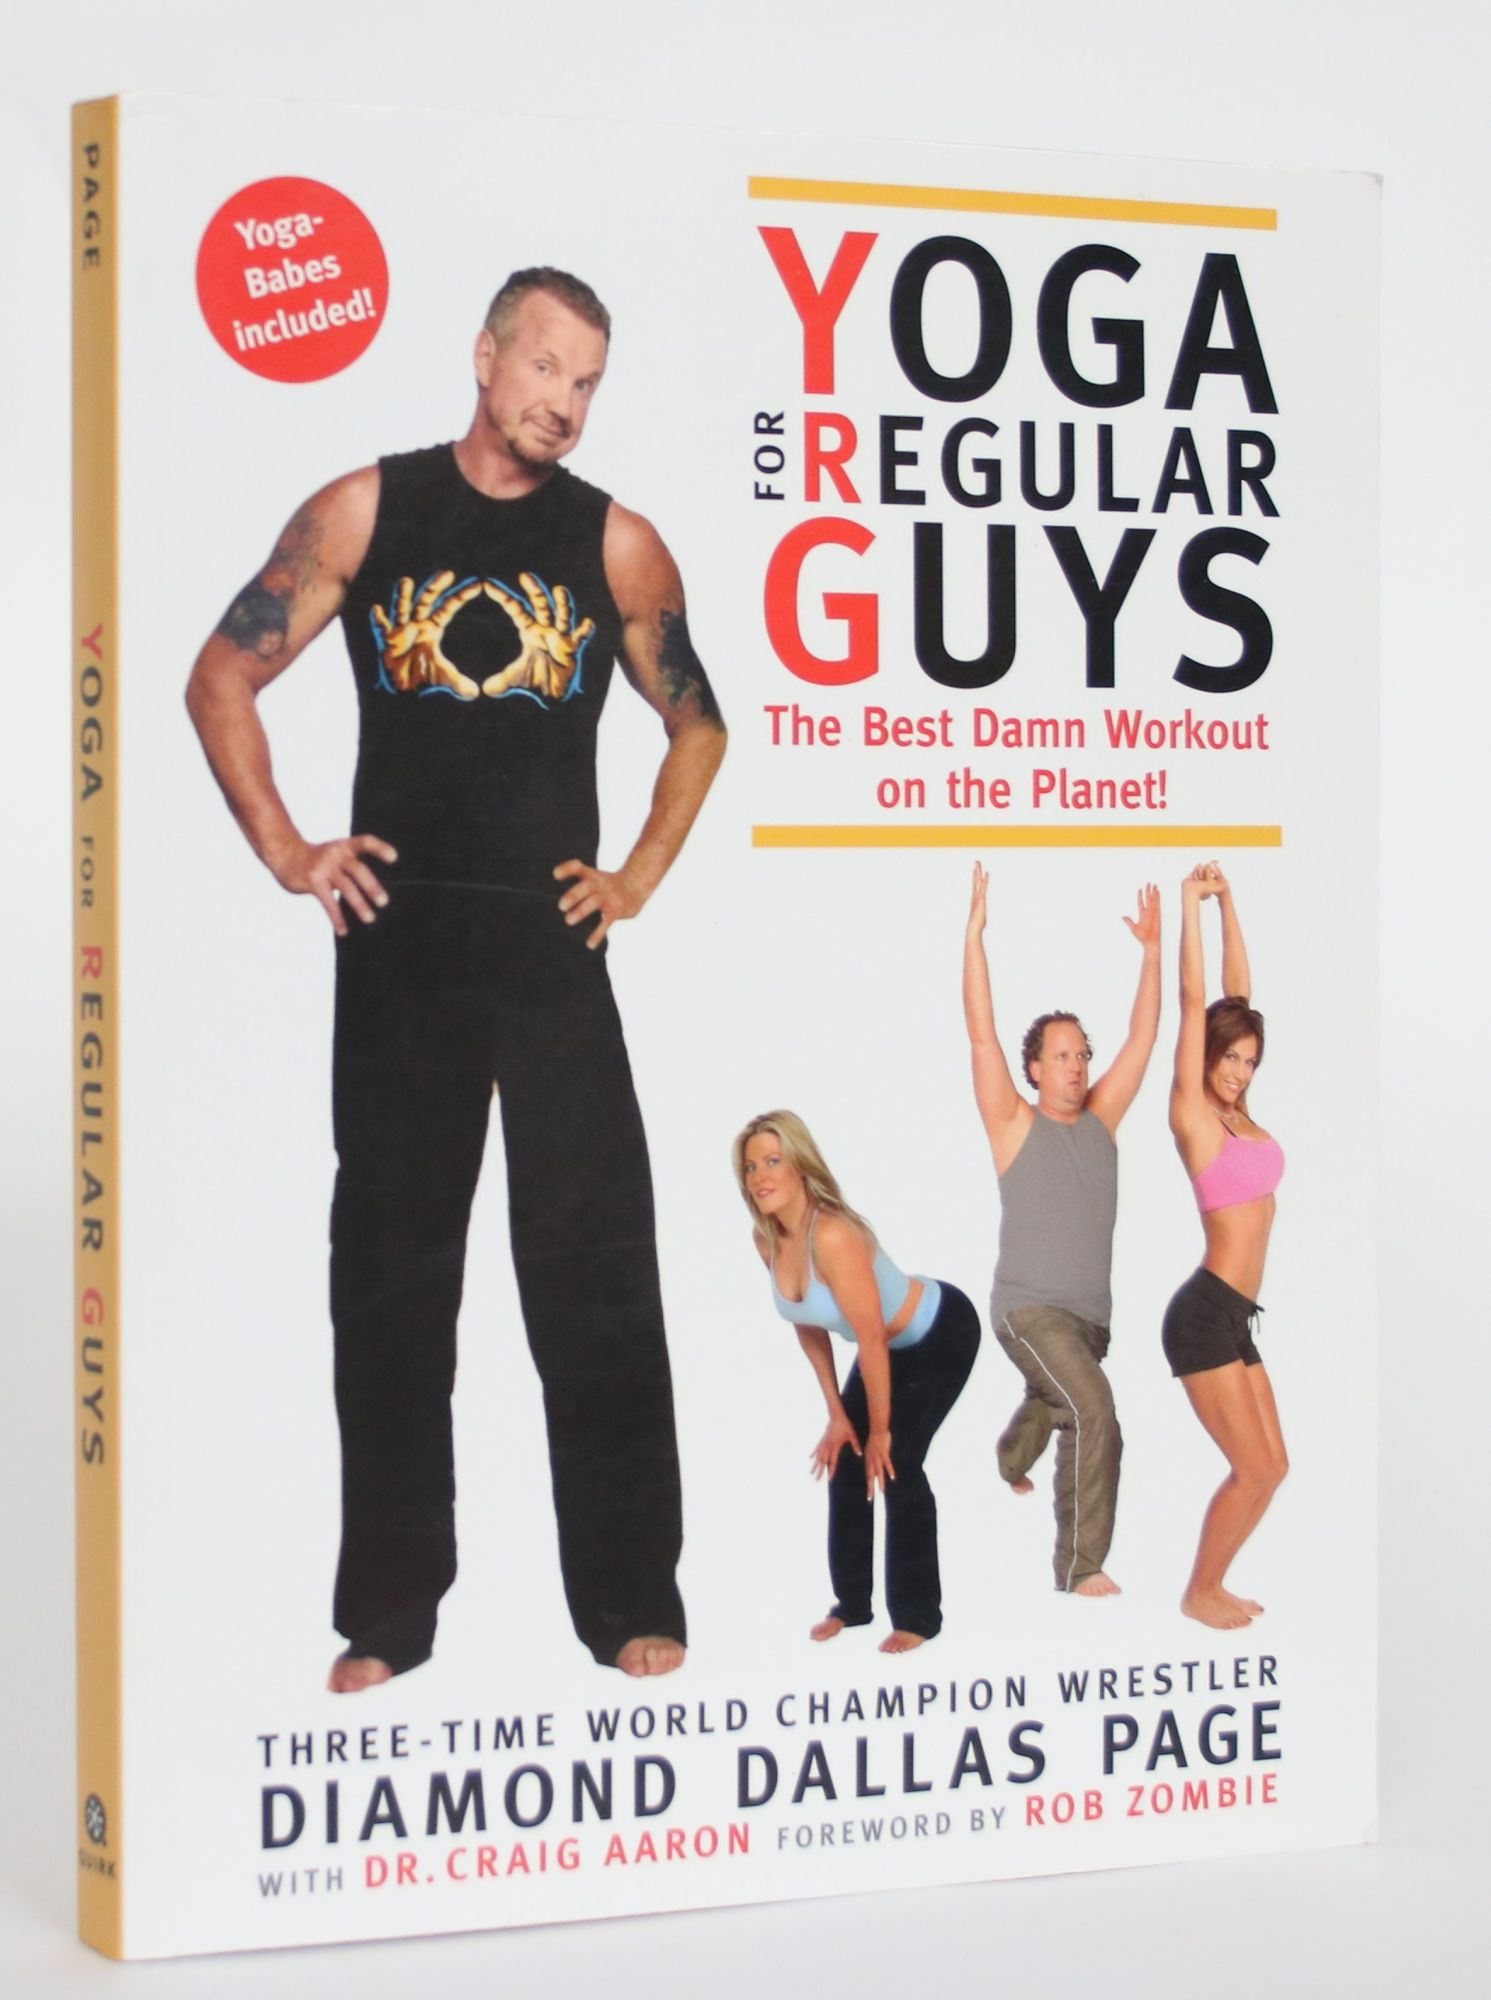 Yoga For Regular Guys The Best Damned Workout On The Planet Diamond Dallas Page Dr Craig Aaron 1st Edition